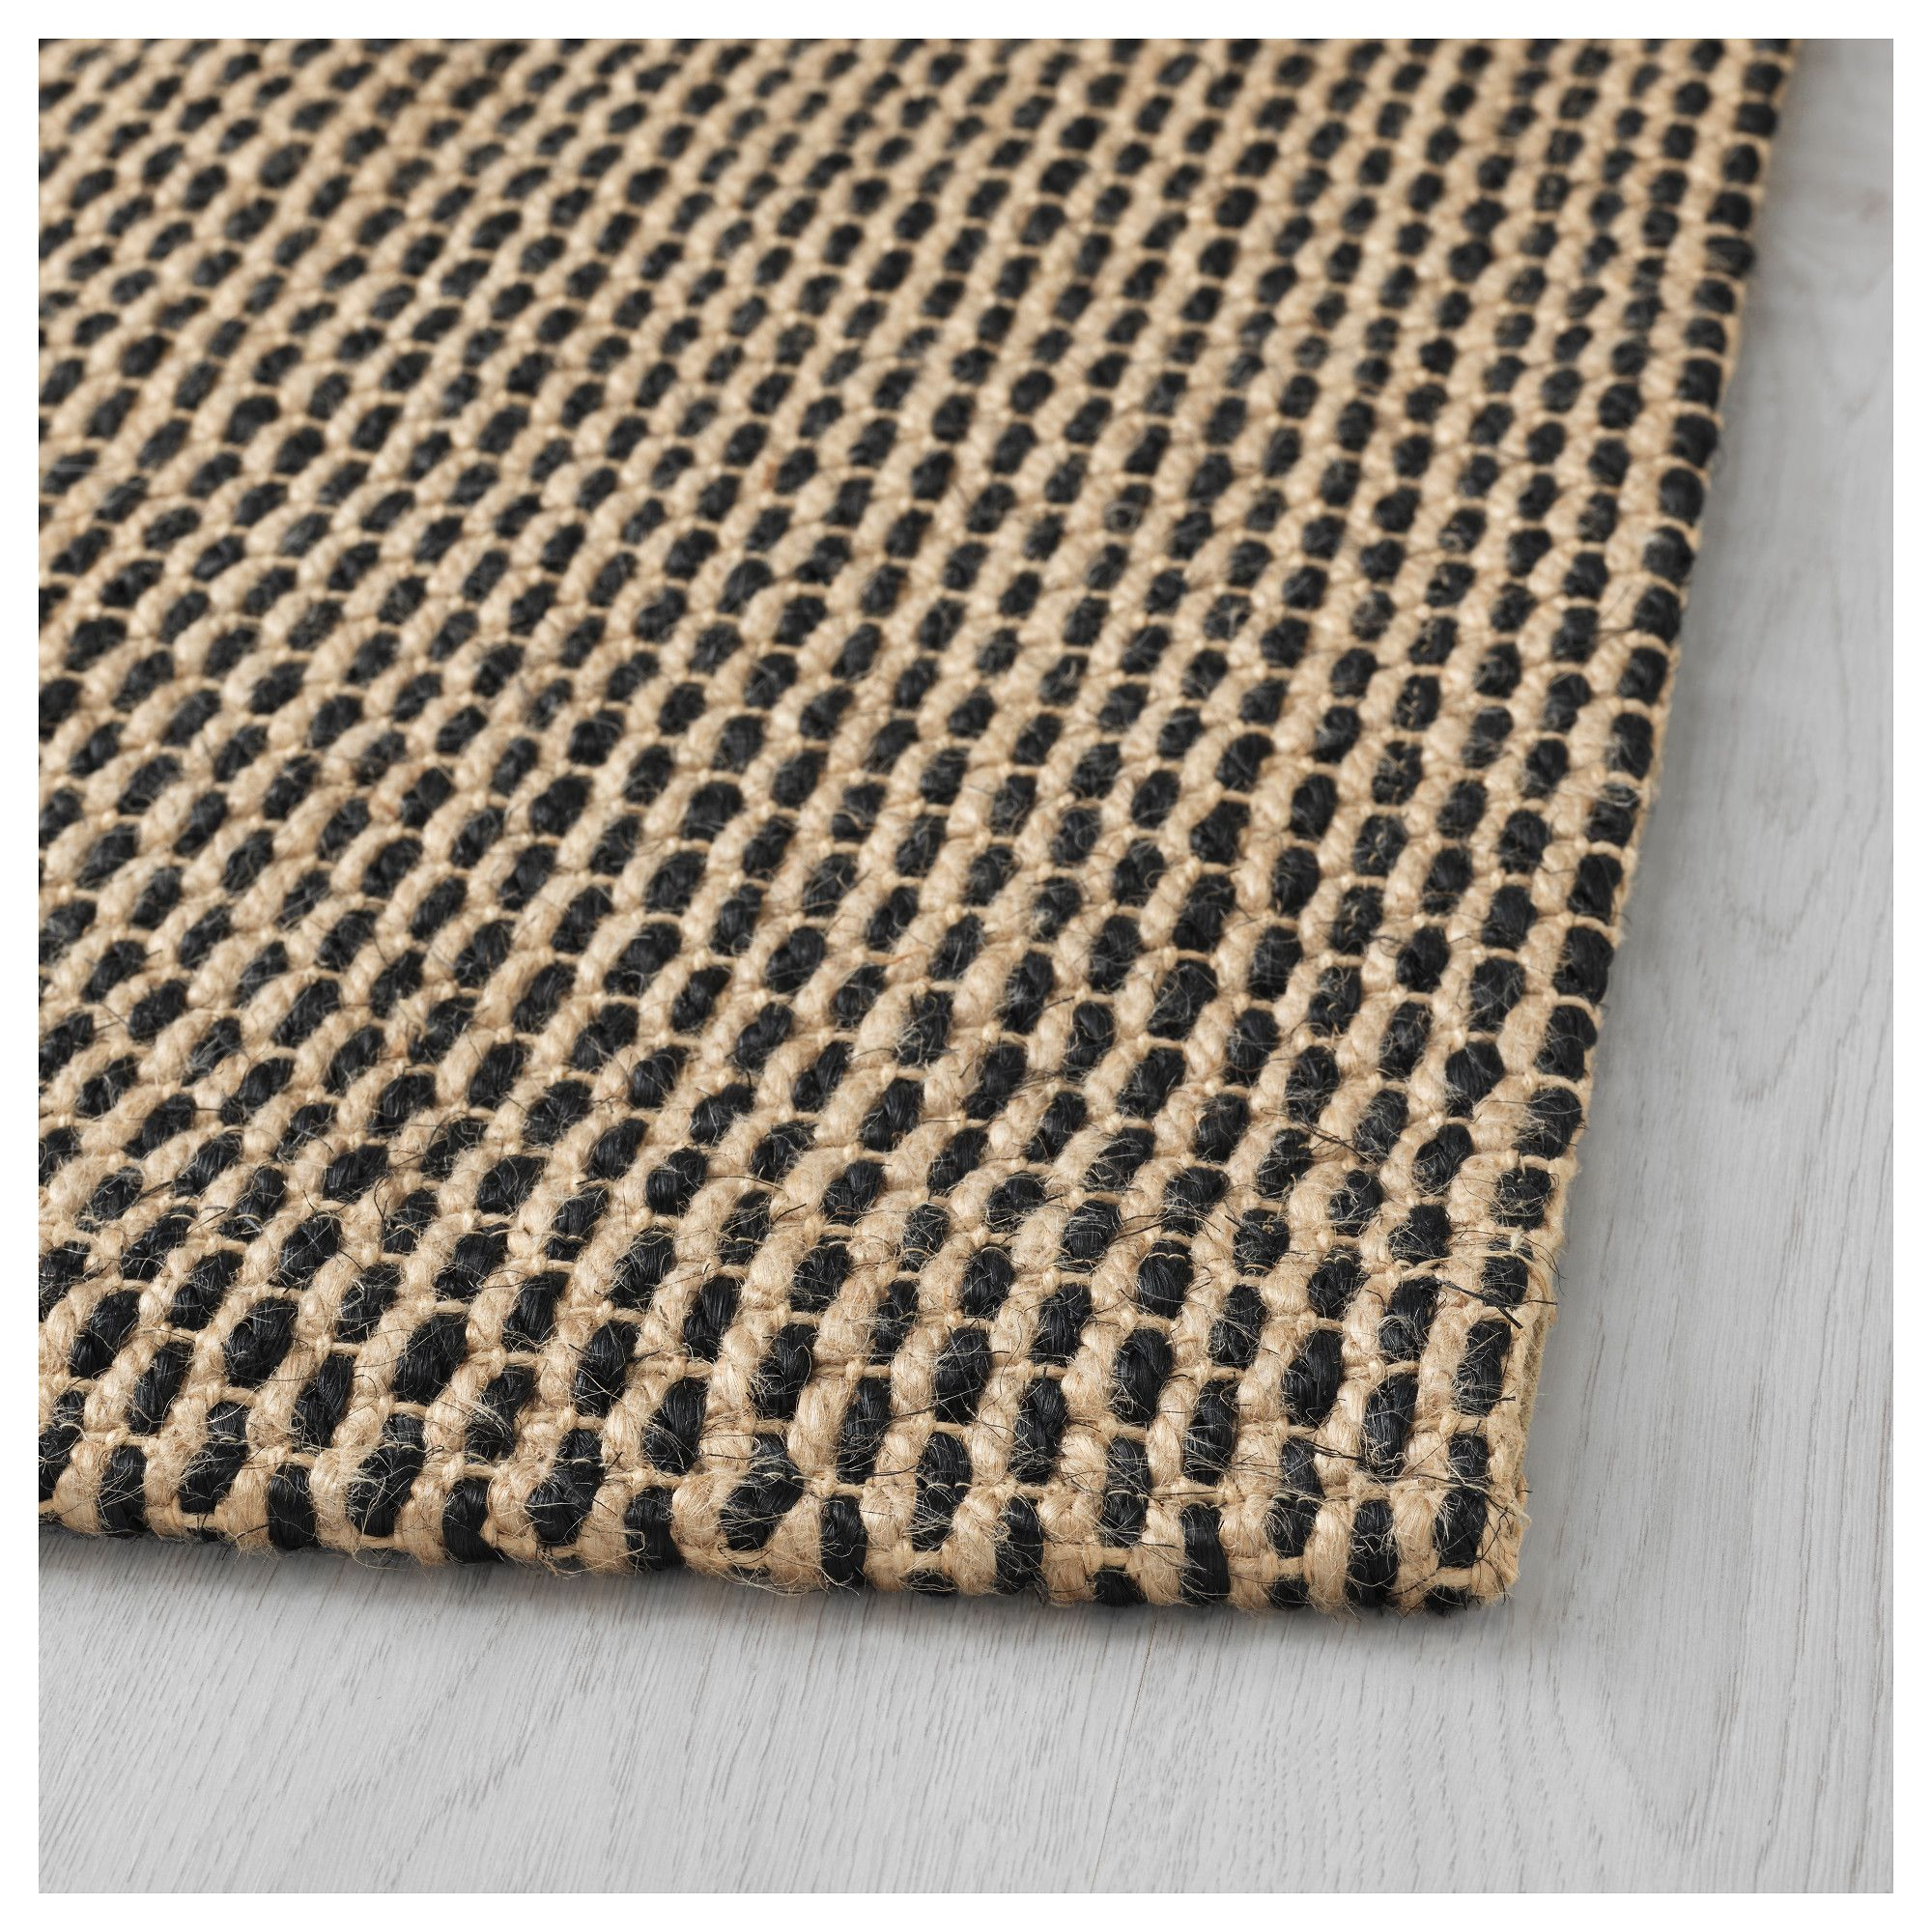 ikea sattrup rug flatwoven natural 180x224 cm the rug is. Black Bedroom Furniture Sets. Home Design Ideas